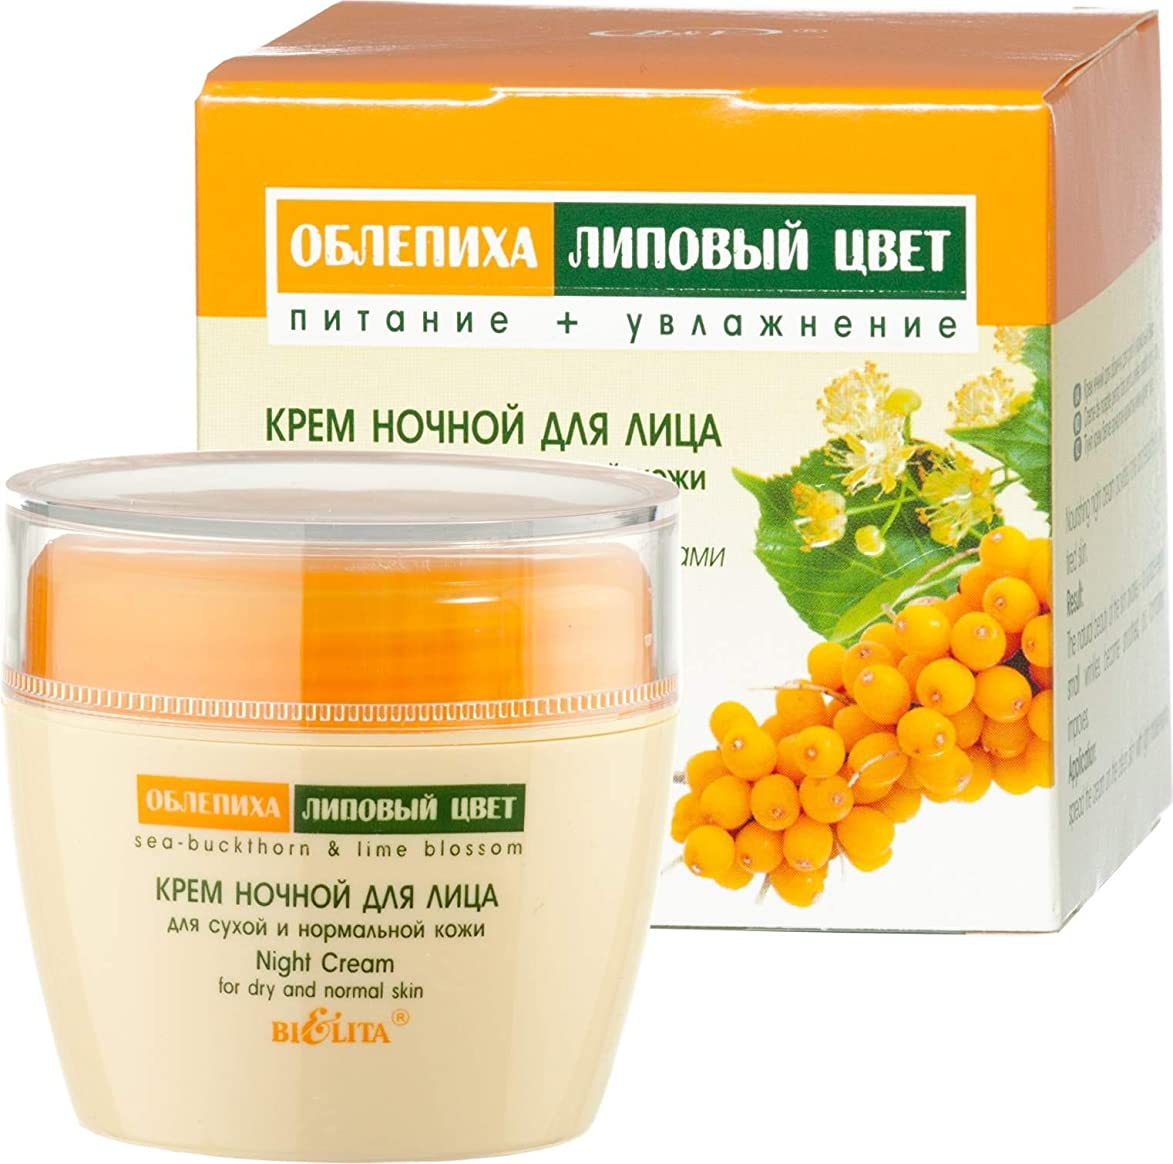 ブロック首謀者自分のBielita & Vitex | Sea-Buckthorn Line | Night Face Cream for Dry and Normal Skin, 50 ml | Sea-Buckthorn Oil, Lime Blossom Oil, Vitamin E